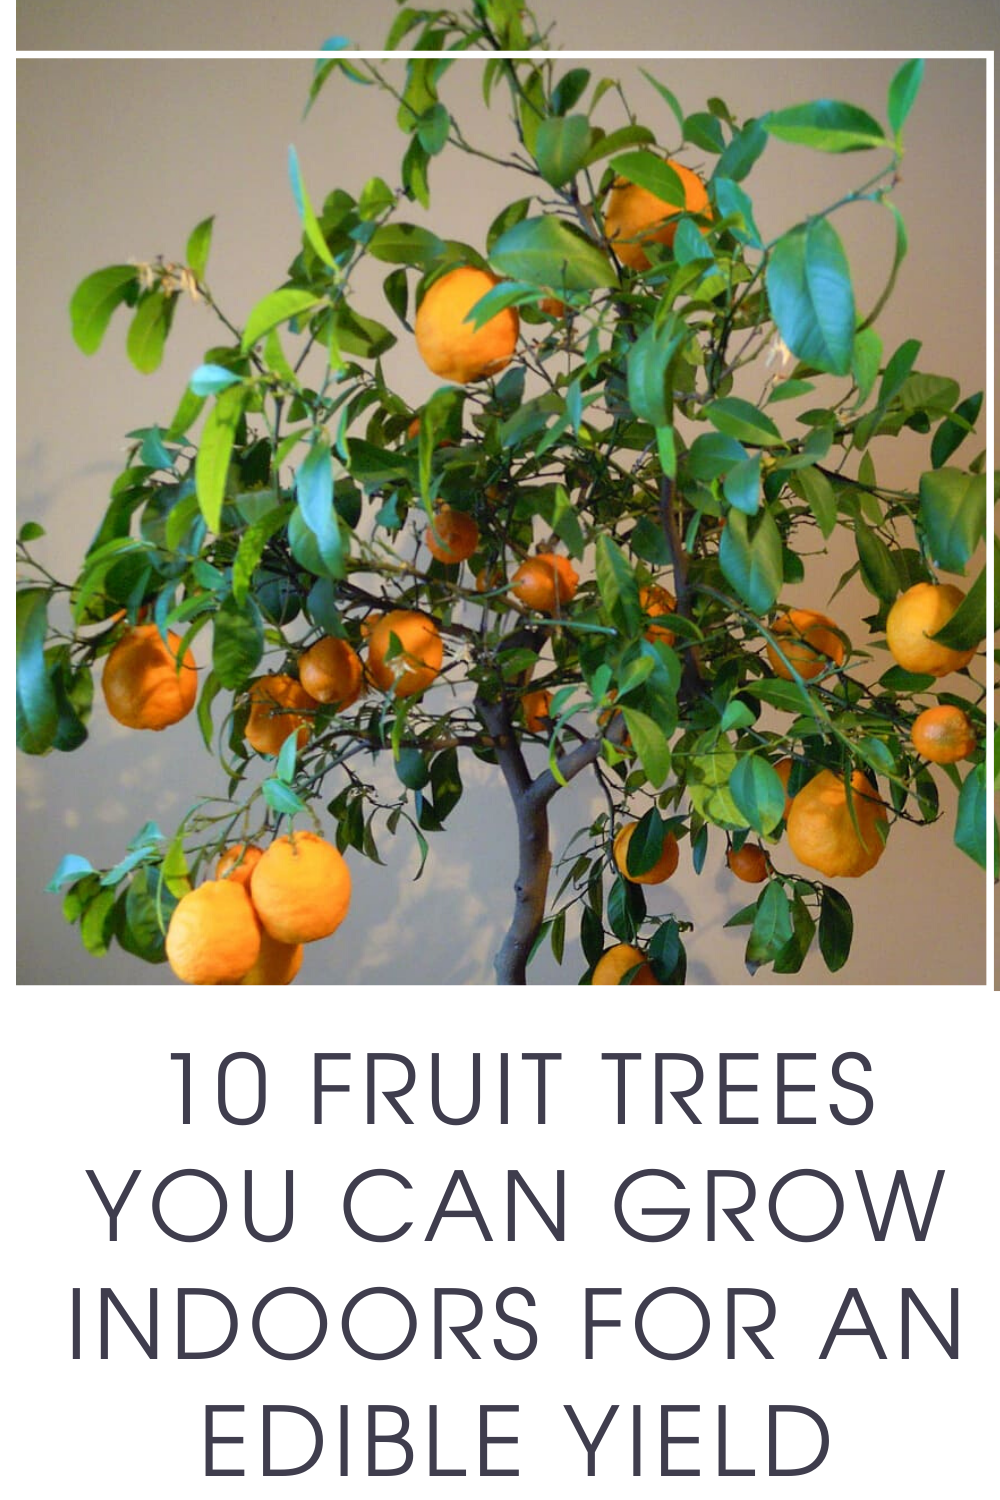 10 Fruit Trees You Can Grow Indoors For An Edible Yield In 400 x 300